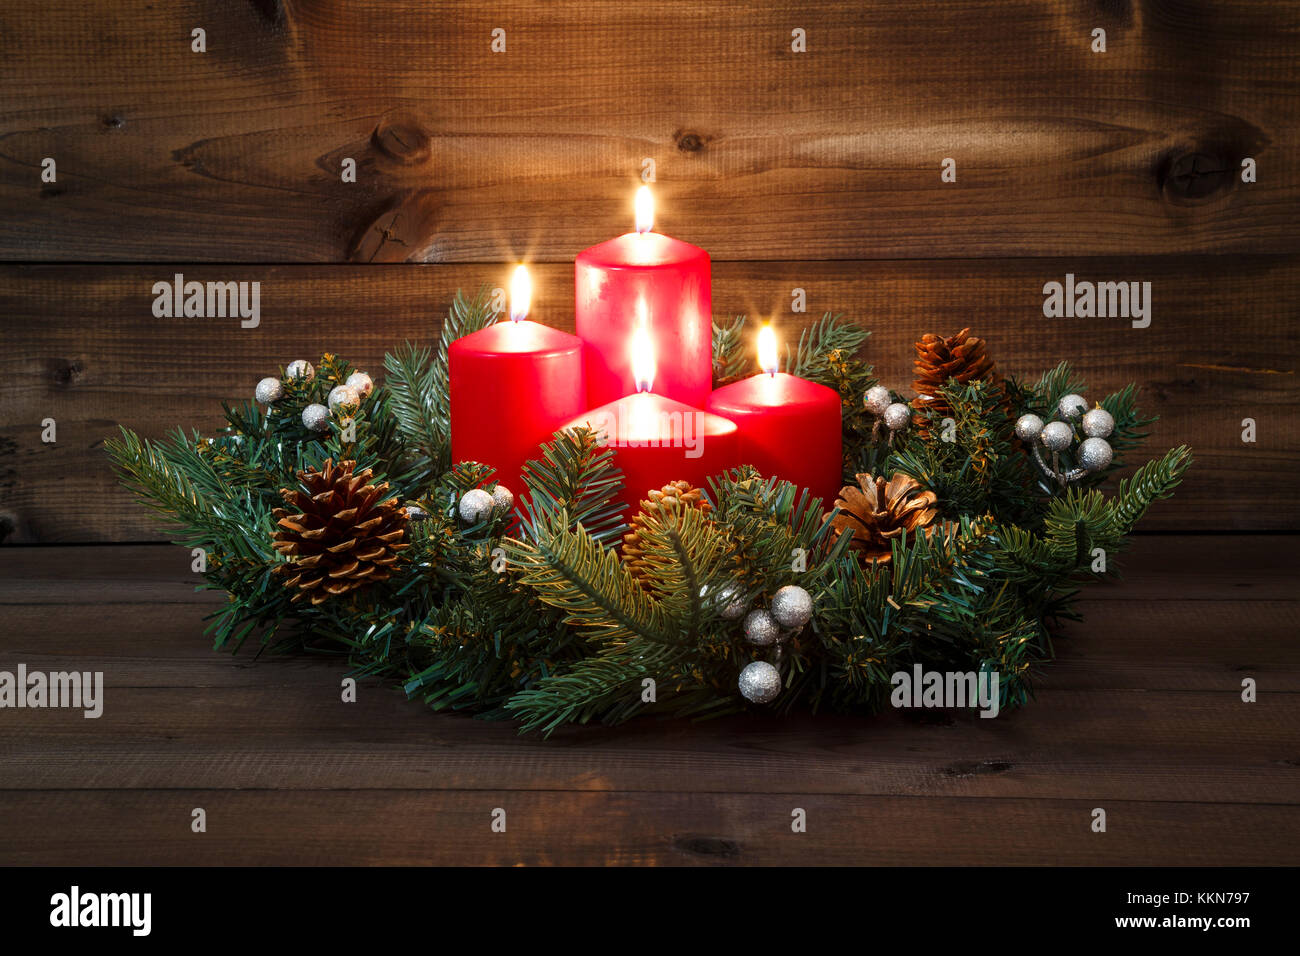 Fourth Advent - Decorated Advent wreath with four red burning candles on a wooden background. - Stock Image